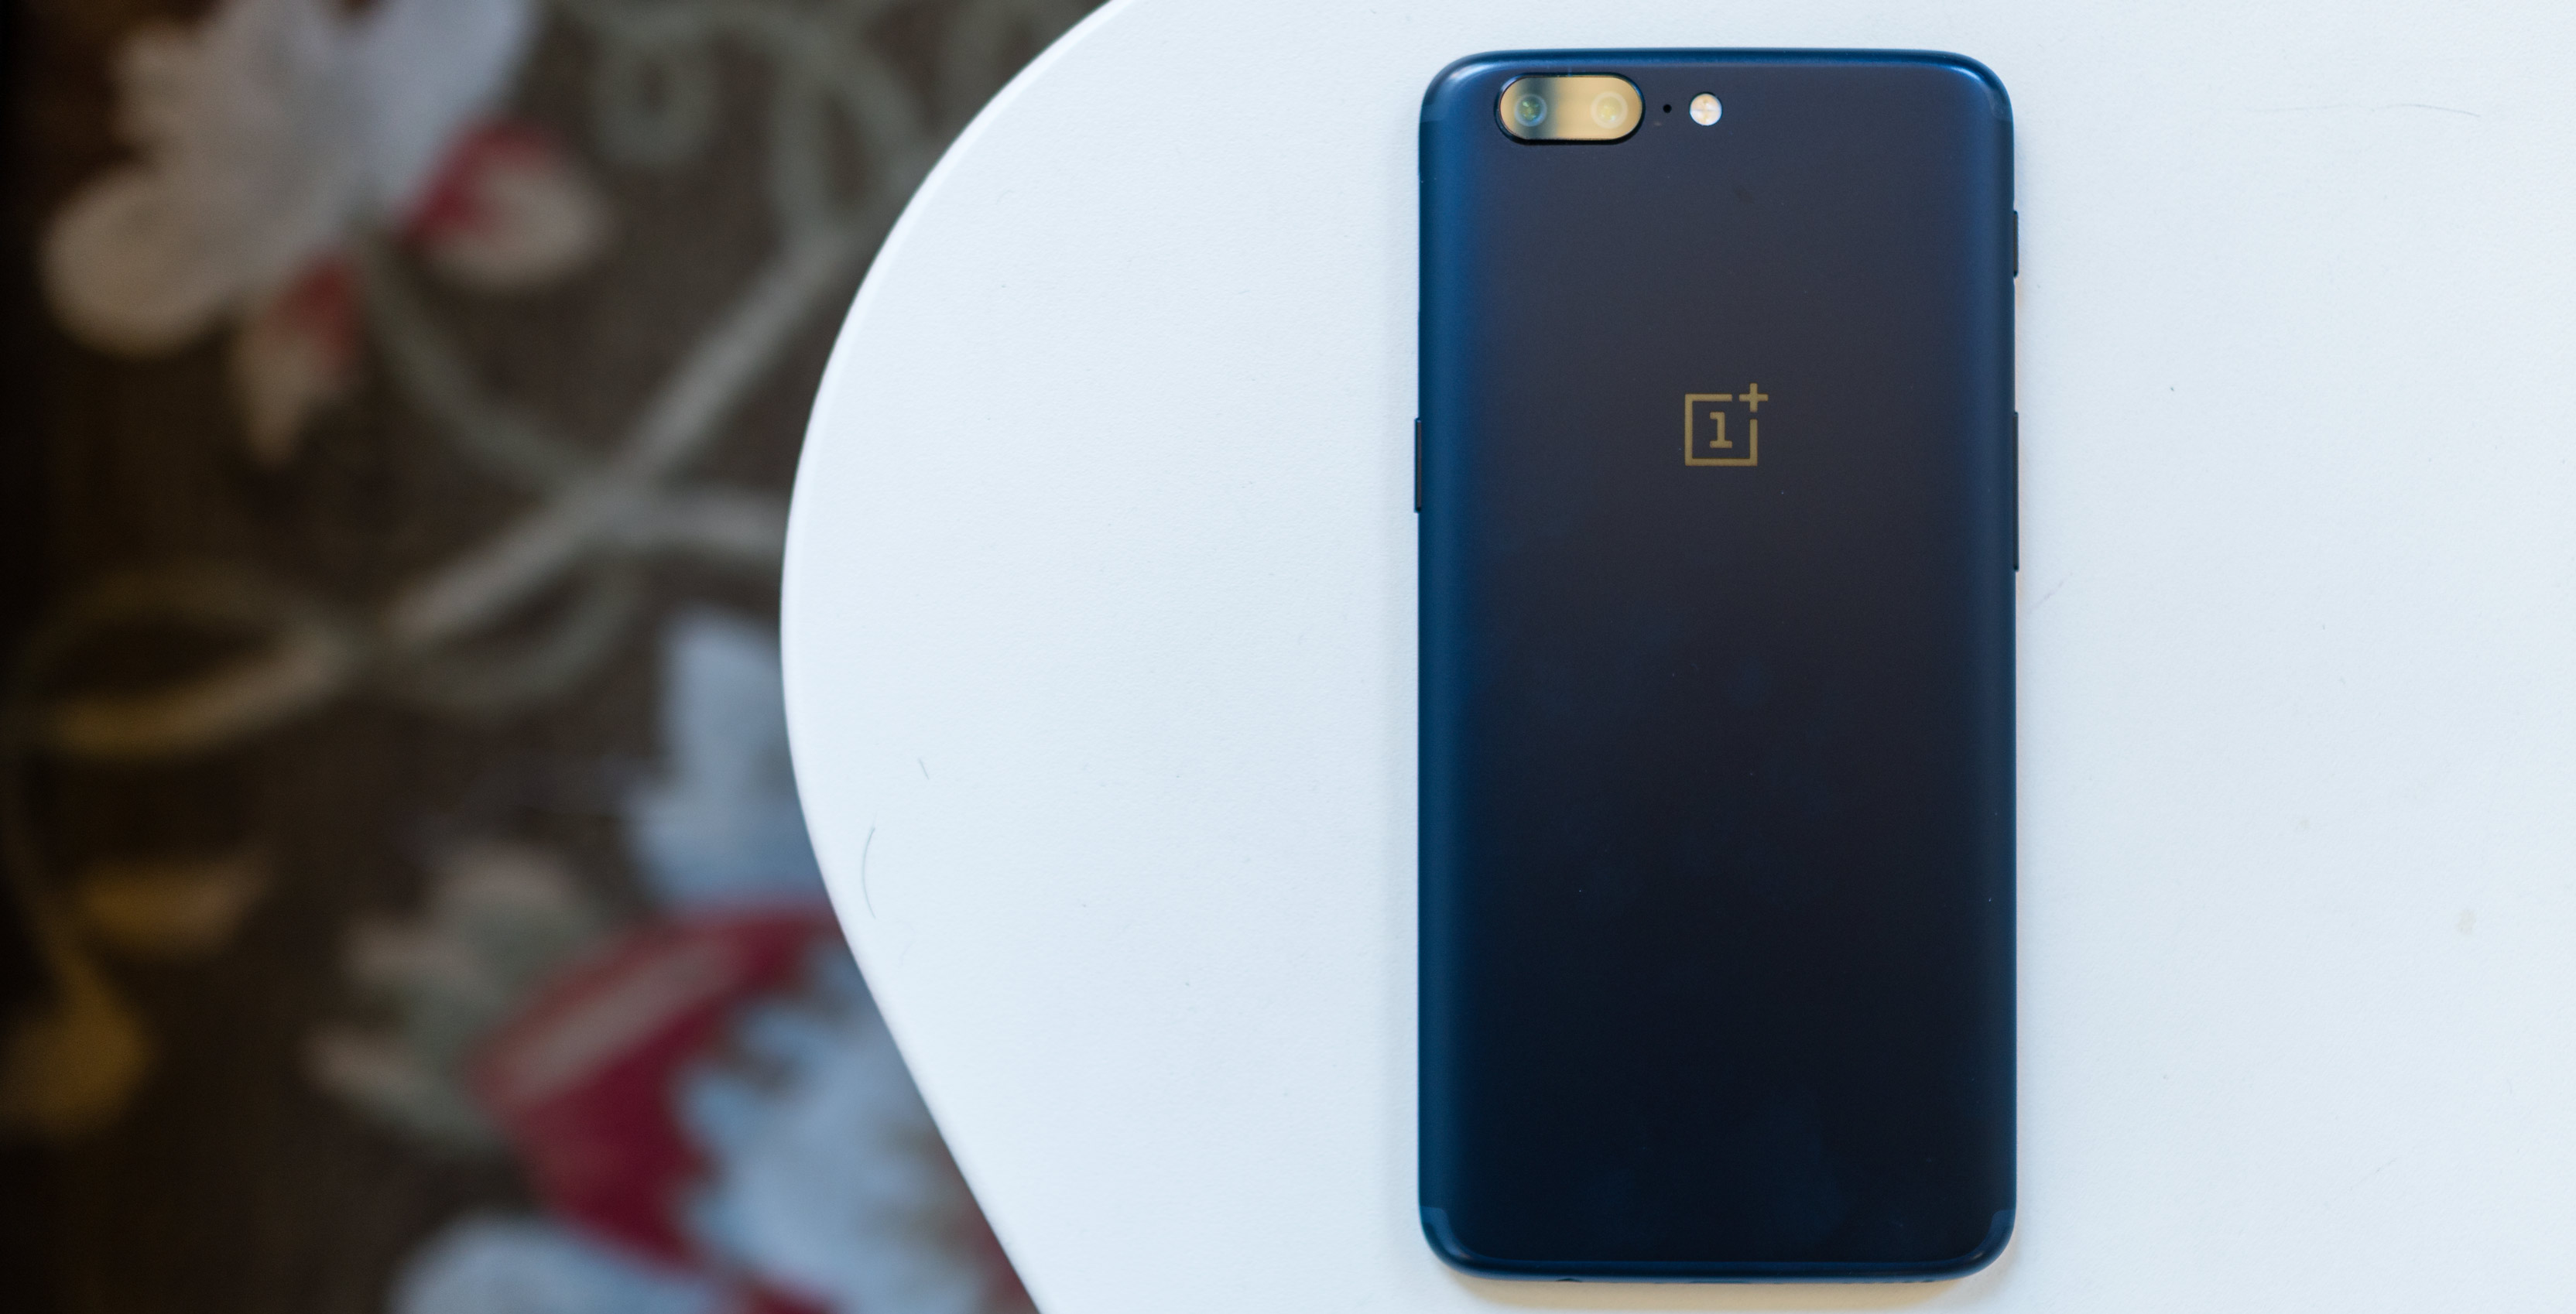 Phone with the best battery - Oneplus 5t